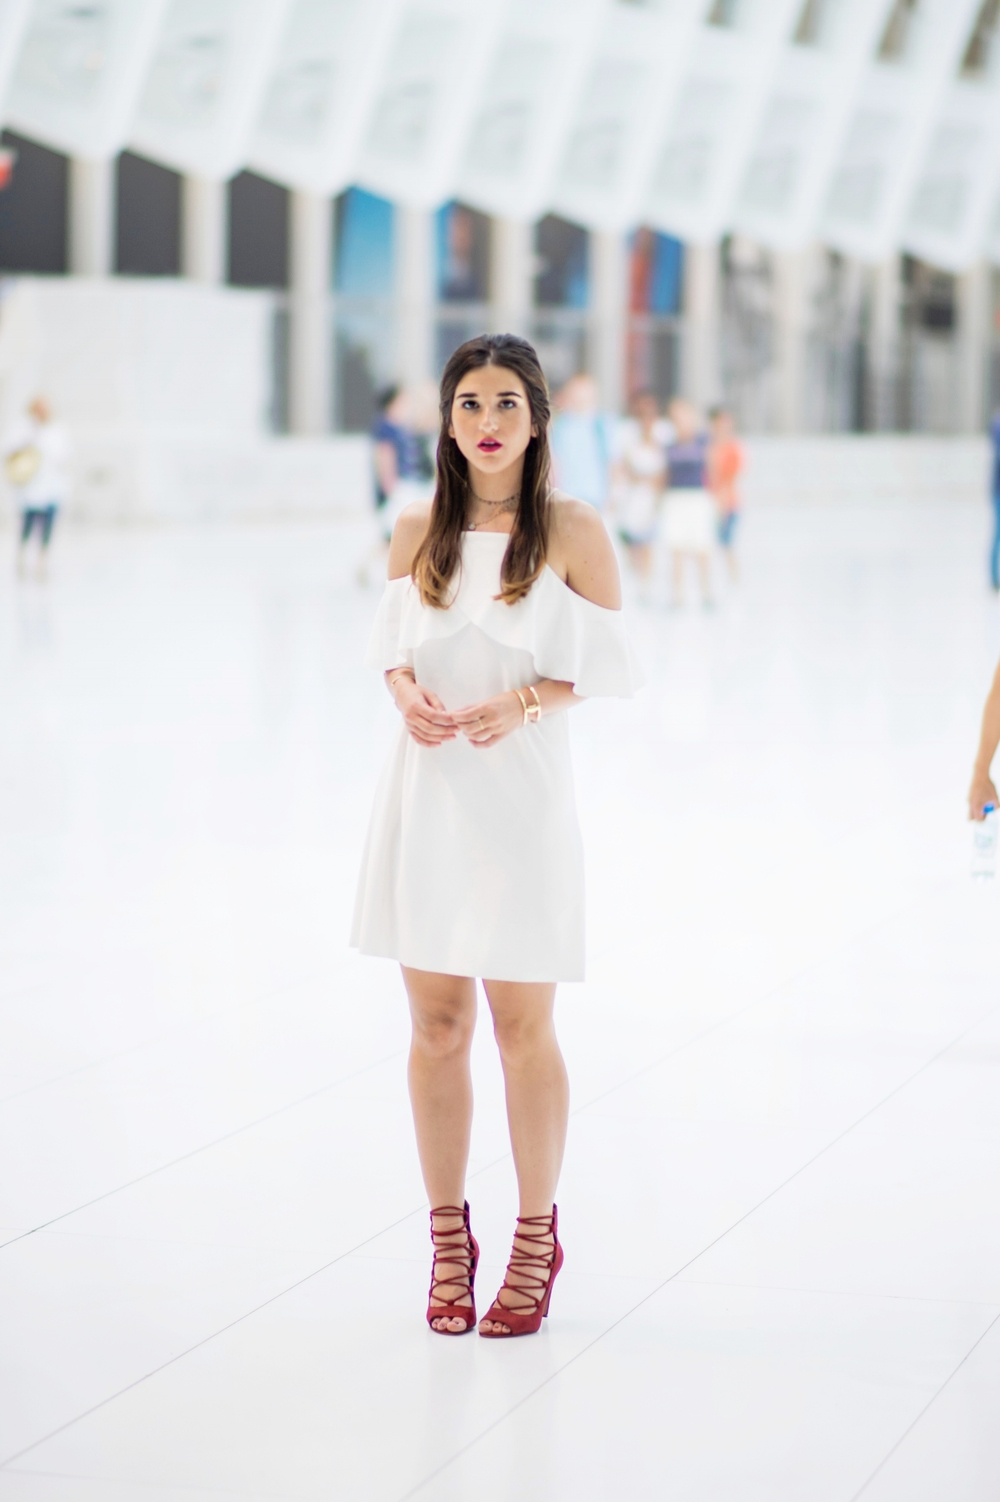 Cold Shoulder White Dress Red Heels Louboutins & Love Fashion Blog Esther Santer NYC Street Style Blogger Outfit OOTD Trendy French Connection Zara Beaded Chokers Jewelry Bloomingdale's Girl Women Shoes Hair Pretty Inspo Gold Bracelet Color Photoshoot.jpg